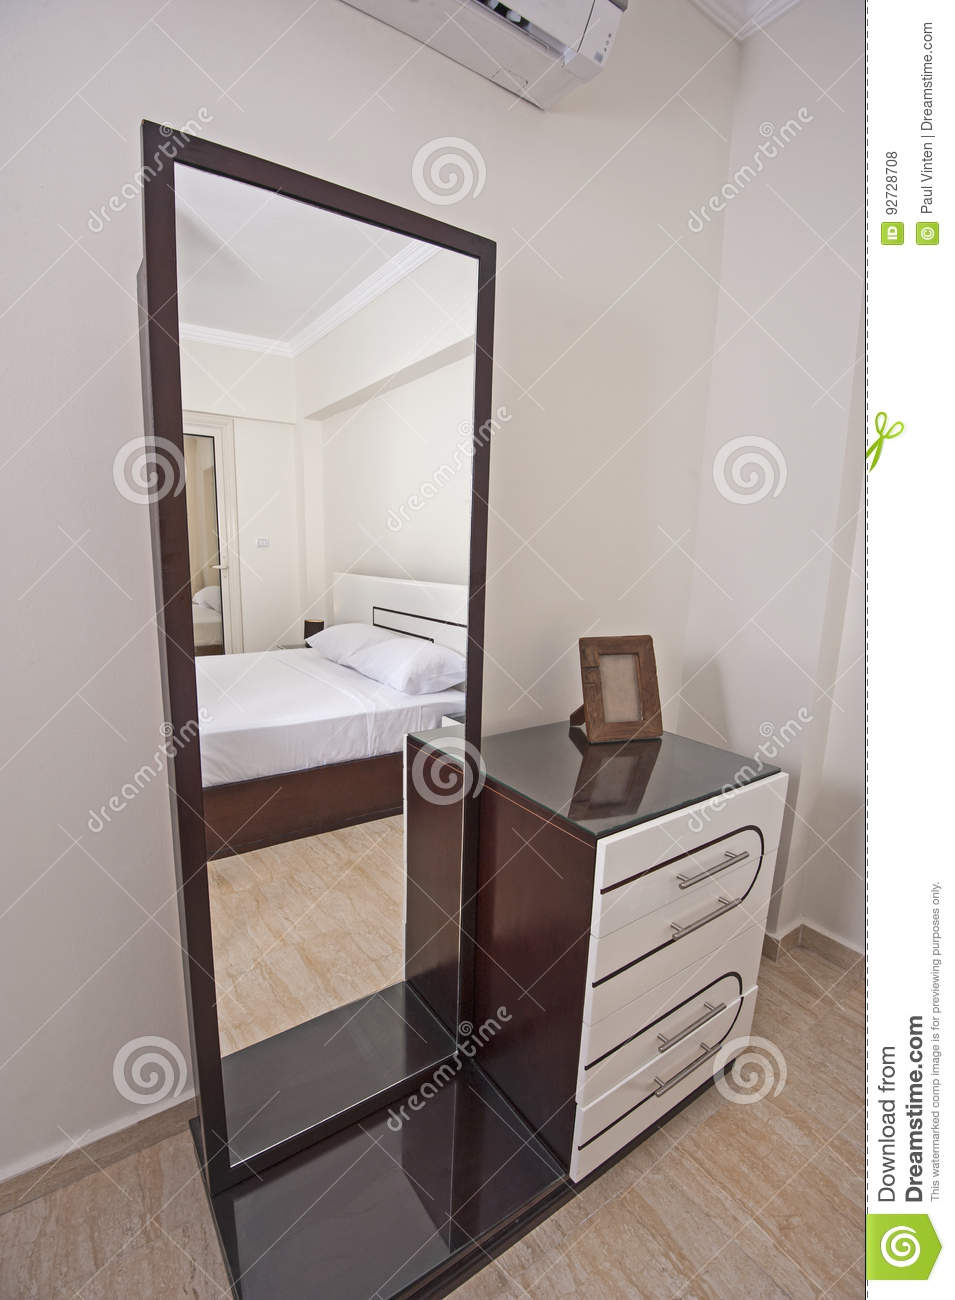 Dressing Table Chest Of Drawers In Apartment Bedroom Stock Photo